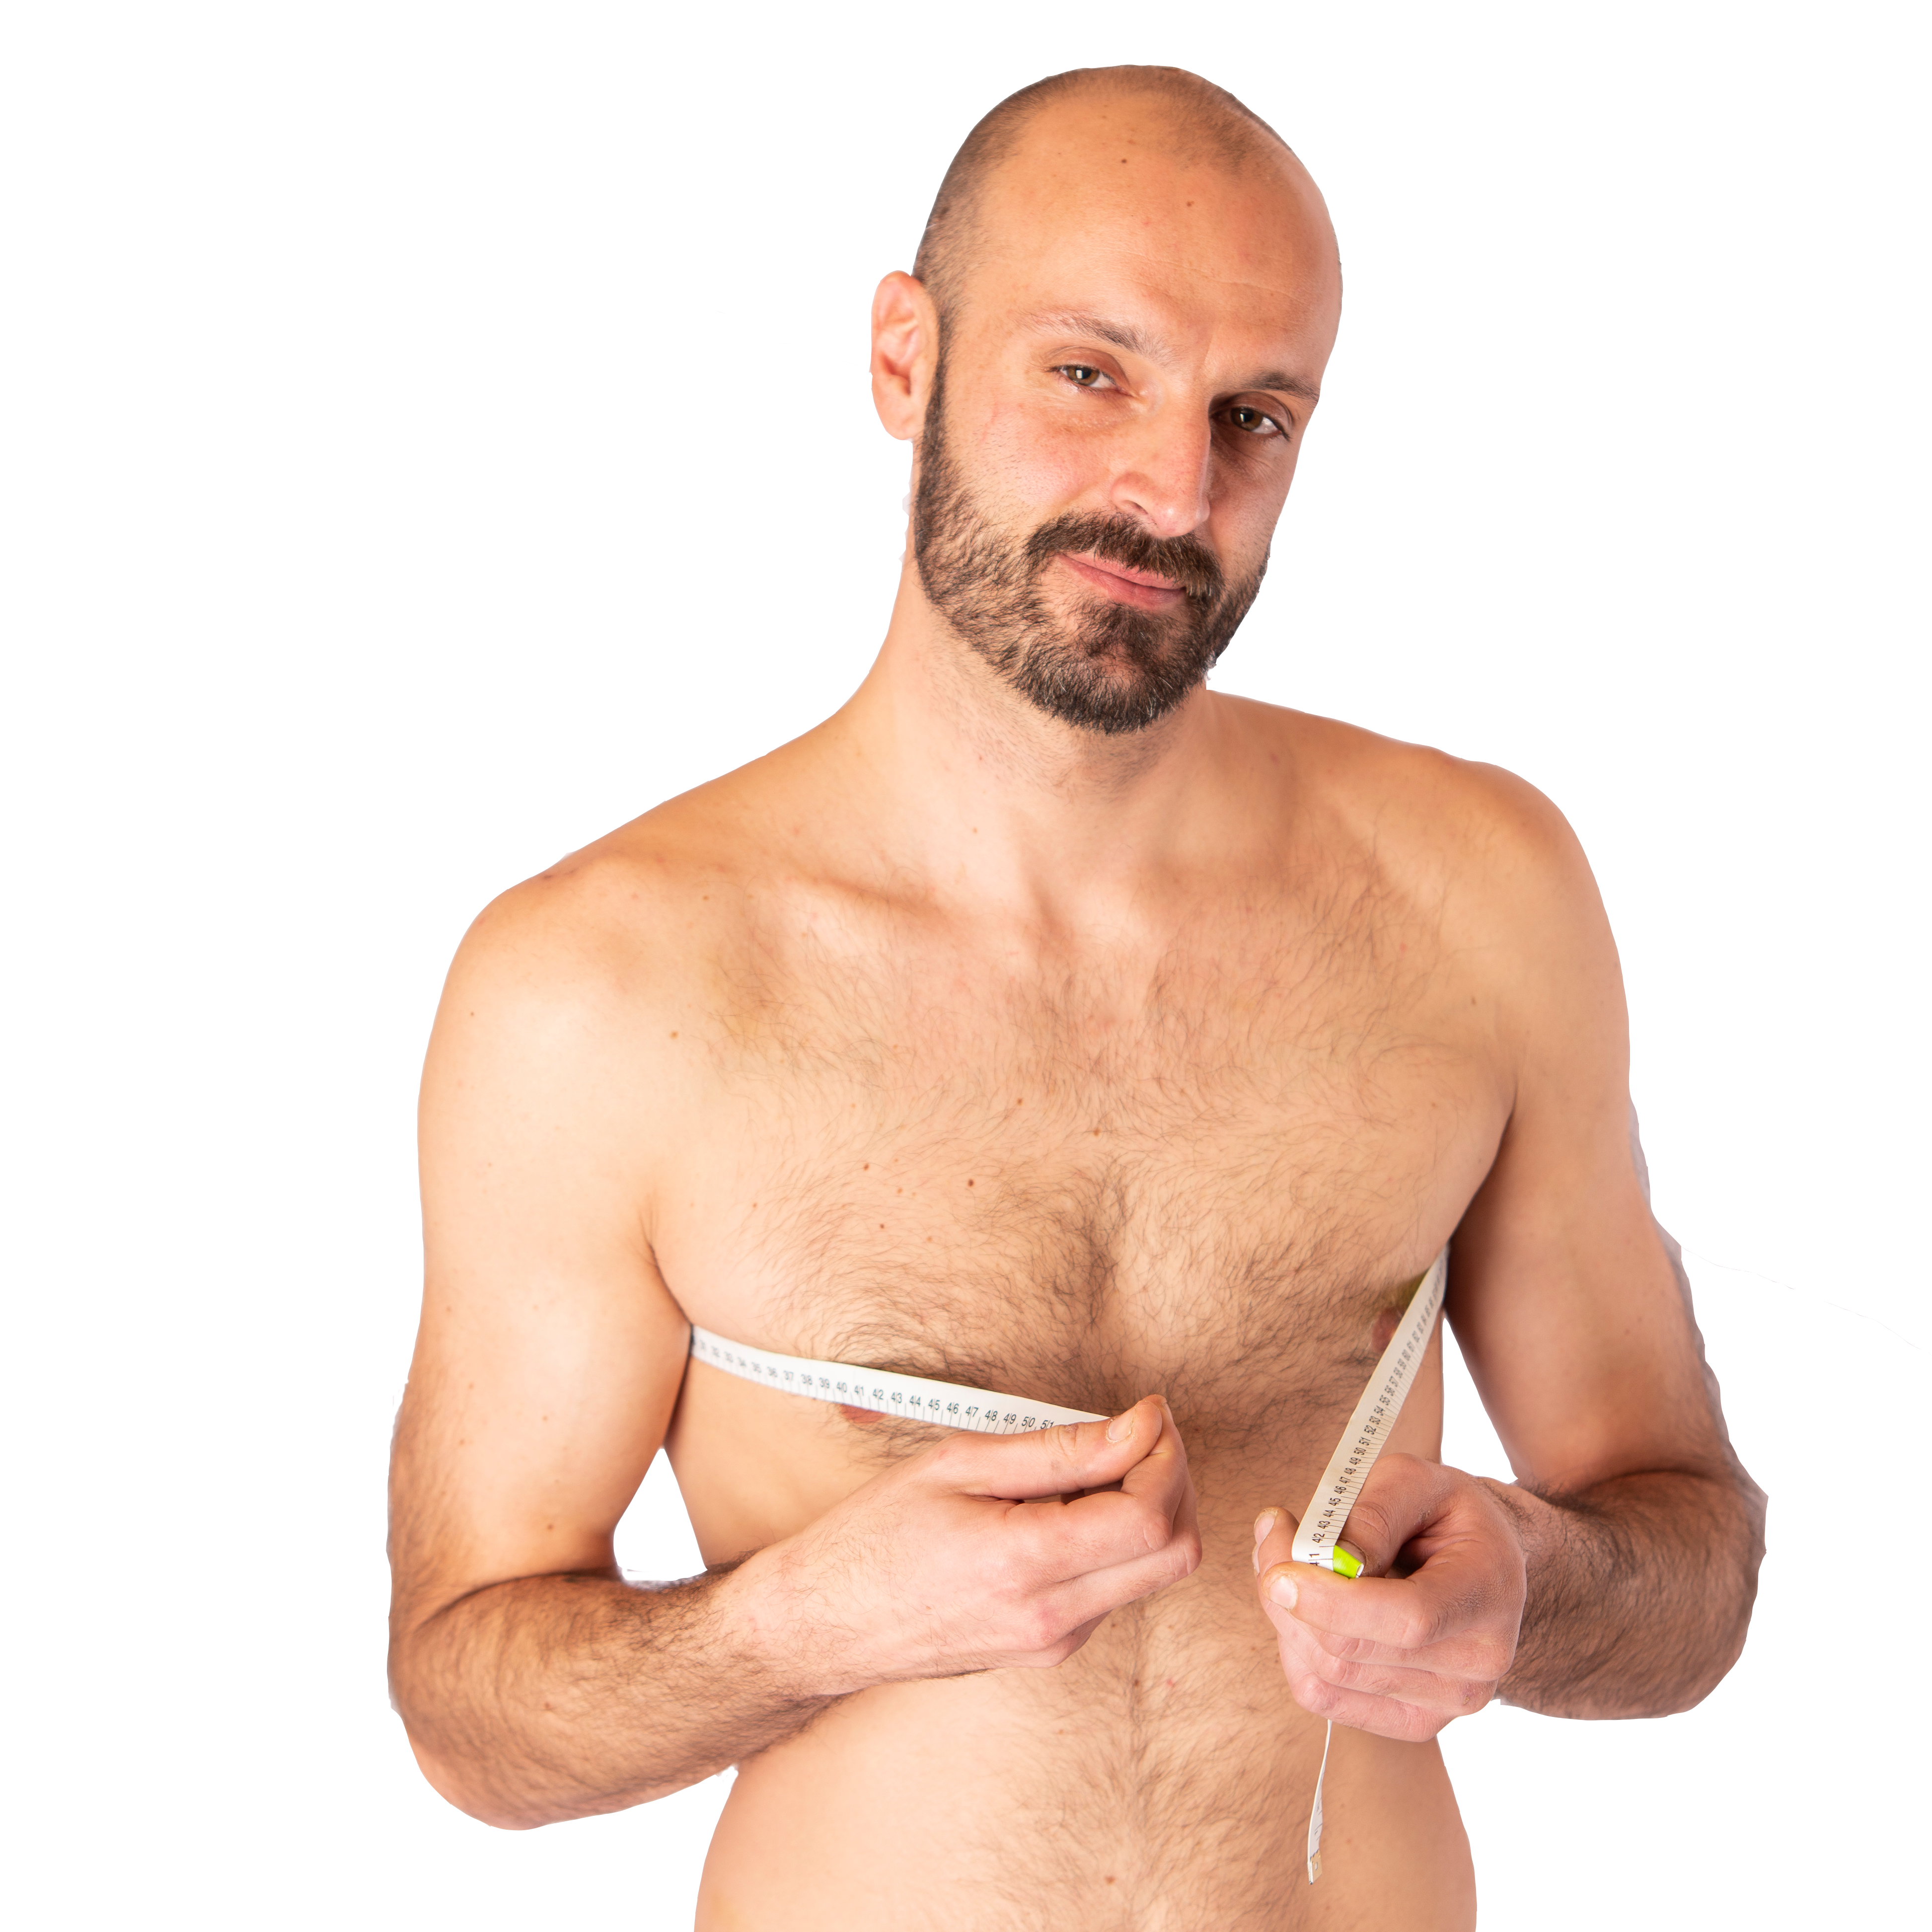 Male Breast Reduction - Gynecomastia: Male Breast Reduction - Gynecomastia